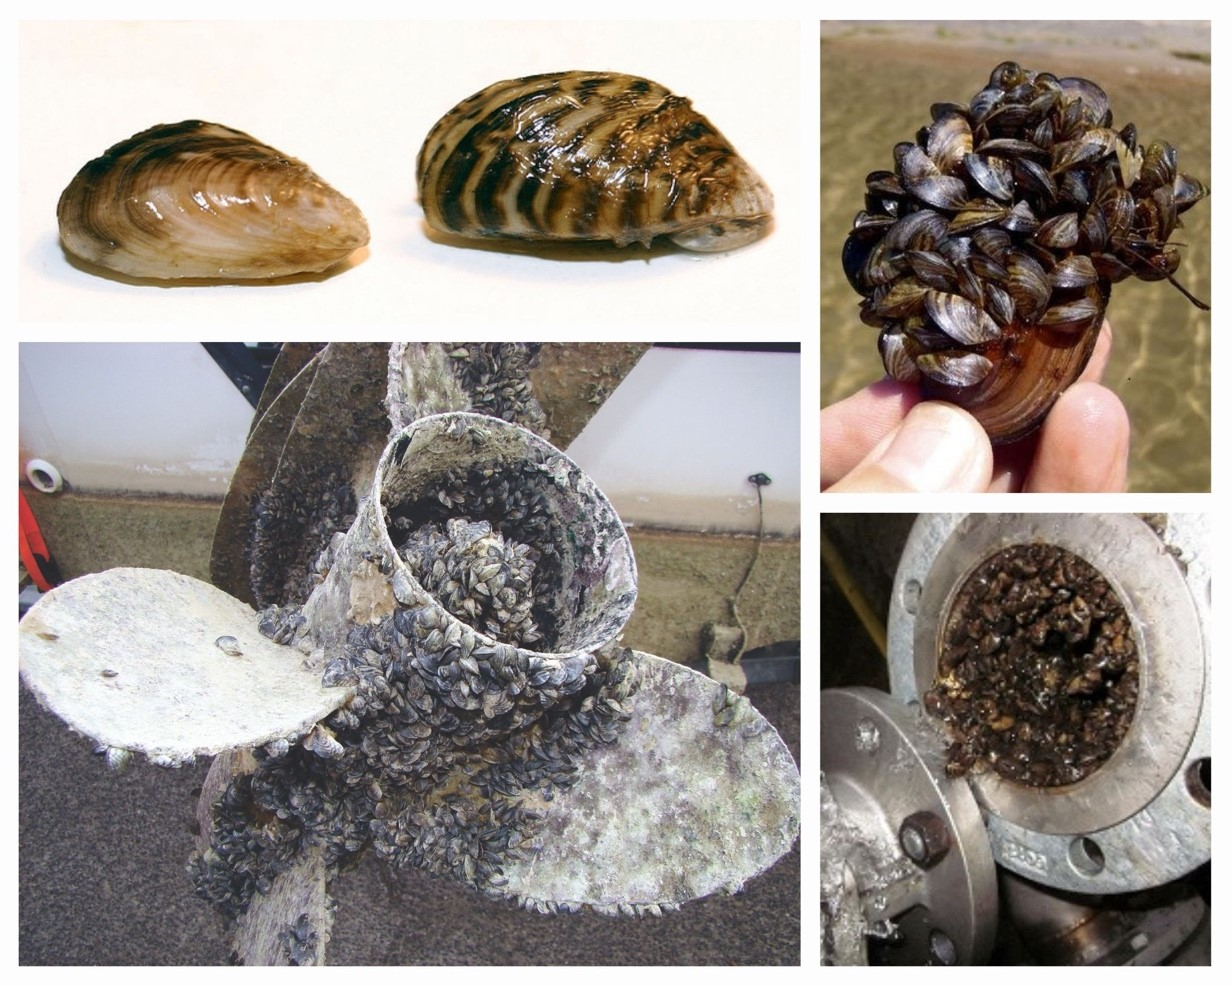 Top left: Quagga (left) and zebra mussel (right). Photo from Michigan Sea Grant. Top right: Mass of quagga mussels. Photo from Division of Boating and Waterways. Bottom left: Quagga mussels on a propeller. Photo from California Dept. of Fish and Wildlife. Bottom right: Zebra mussels inside a pipe.